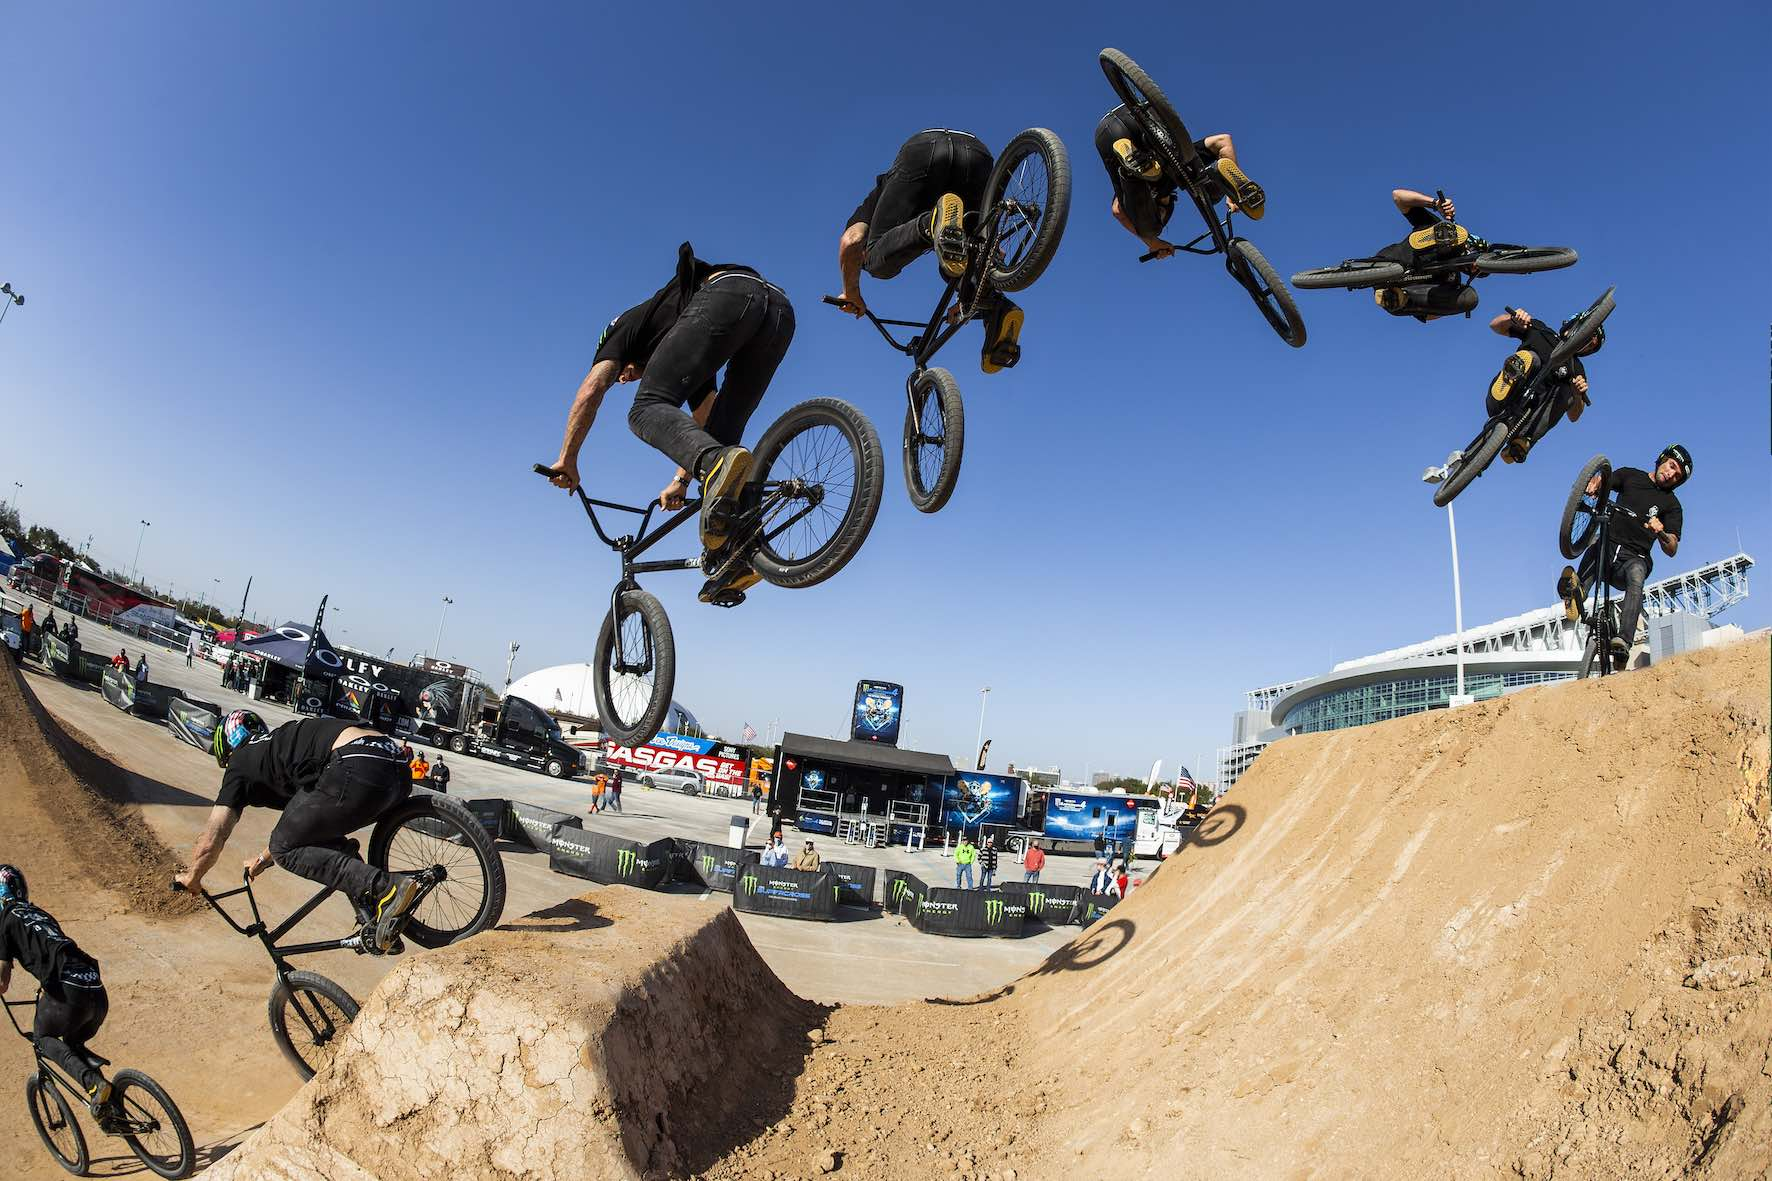 Larry Edgar riding in the Monster Energy BMX Triple Challenge Dirt Competition